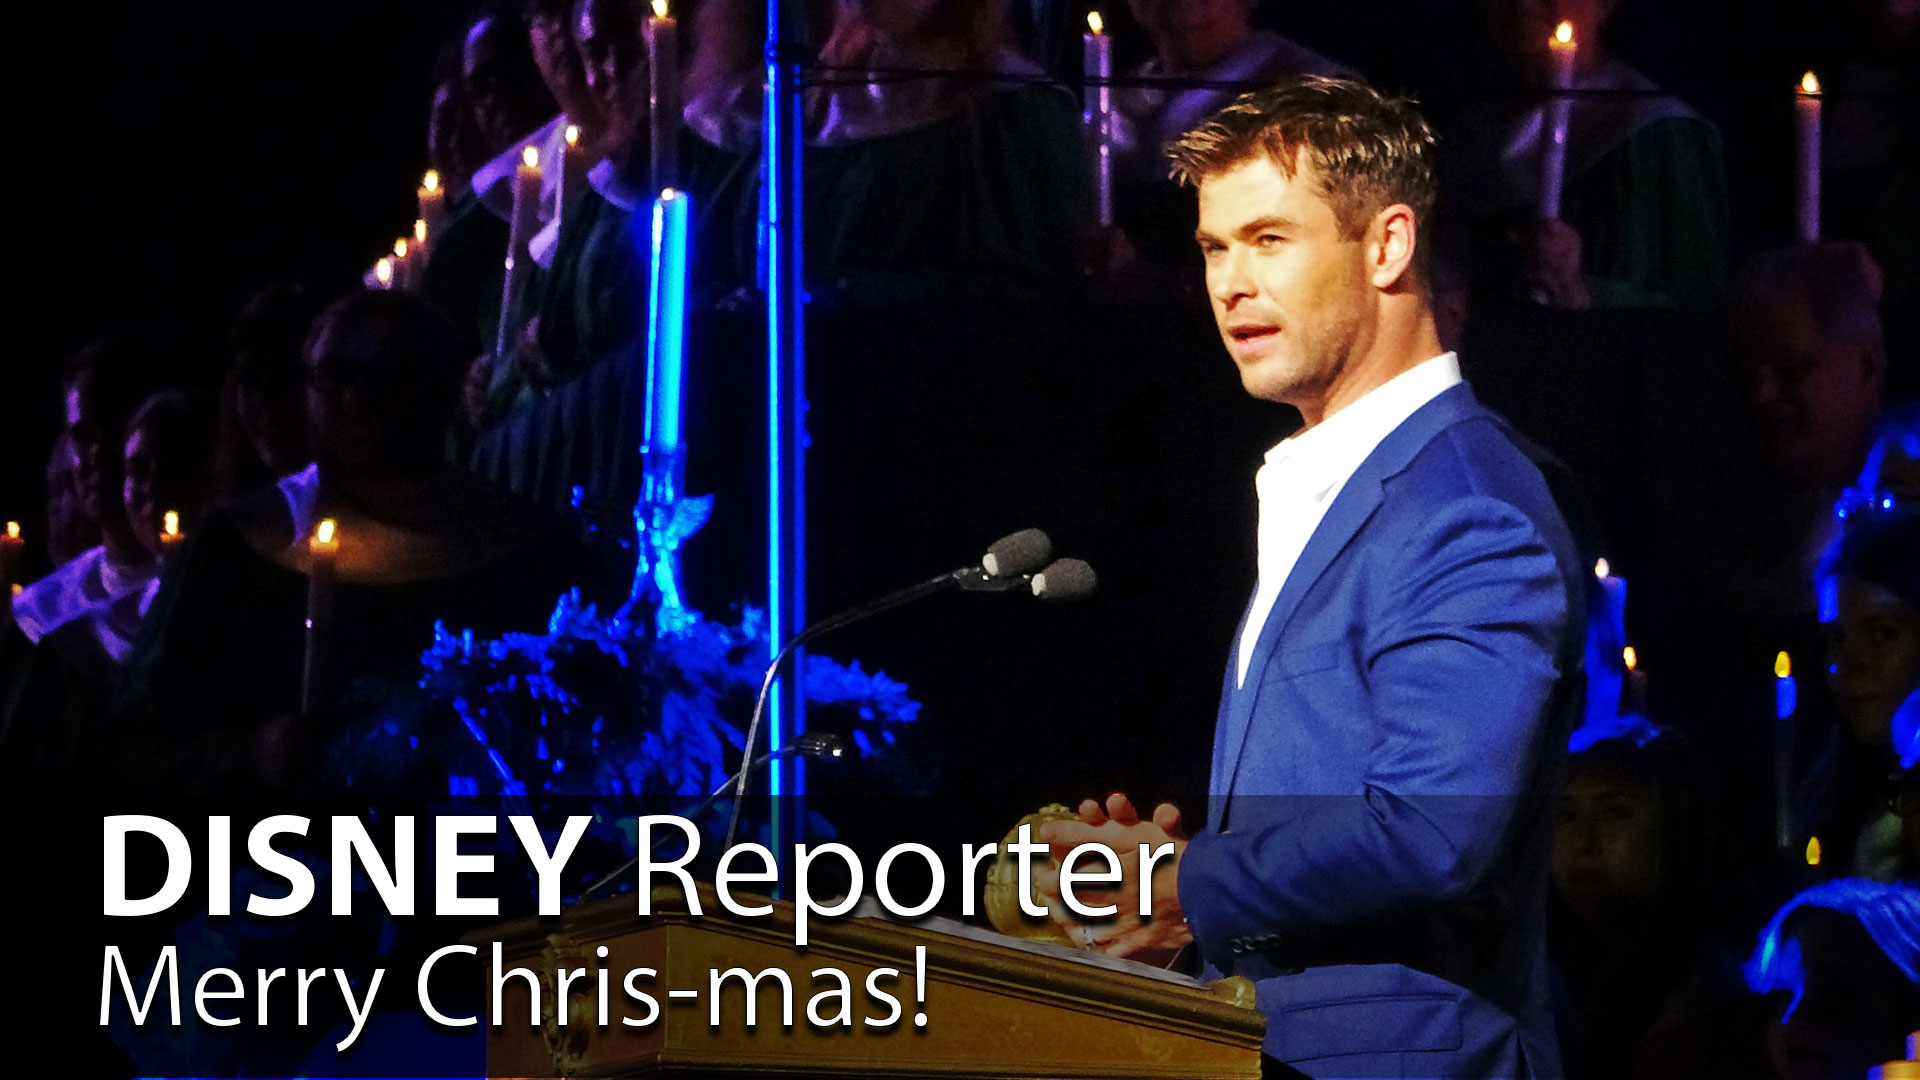 Merry Chris-mas! – DISNEY Reporter